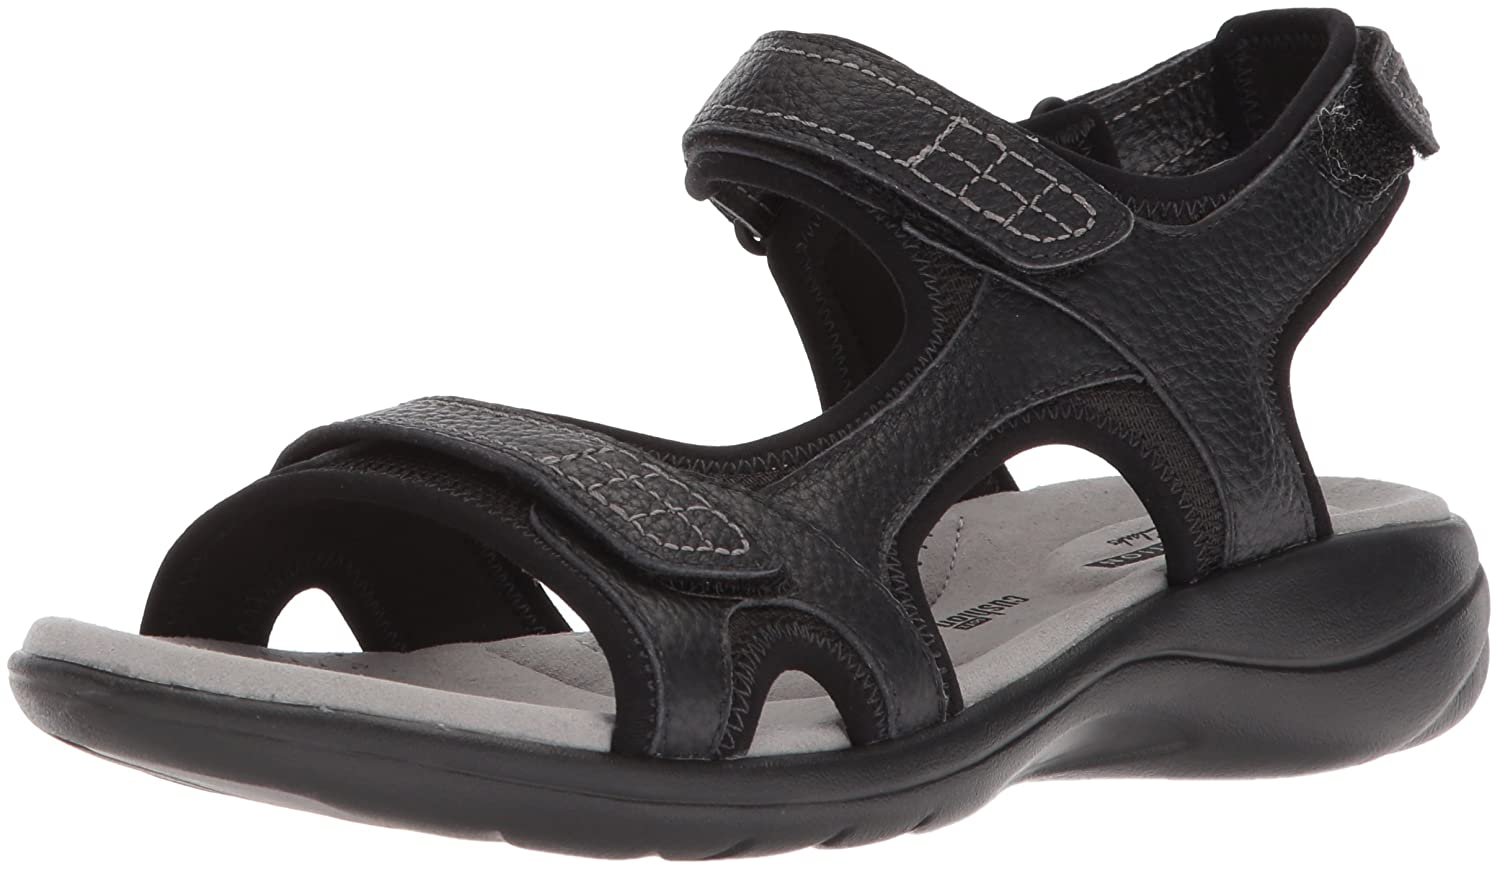 CLARKS Women's Saylie Jade Sandal B074CHHPX6 7 W US|Black Tumbled Leather